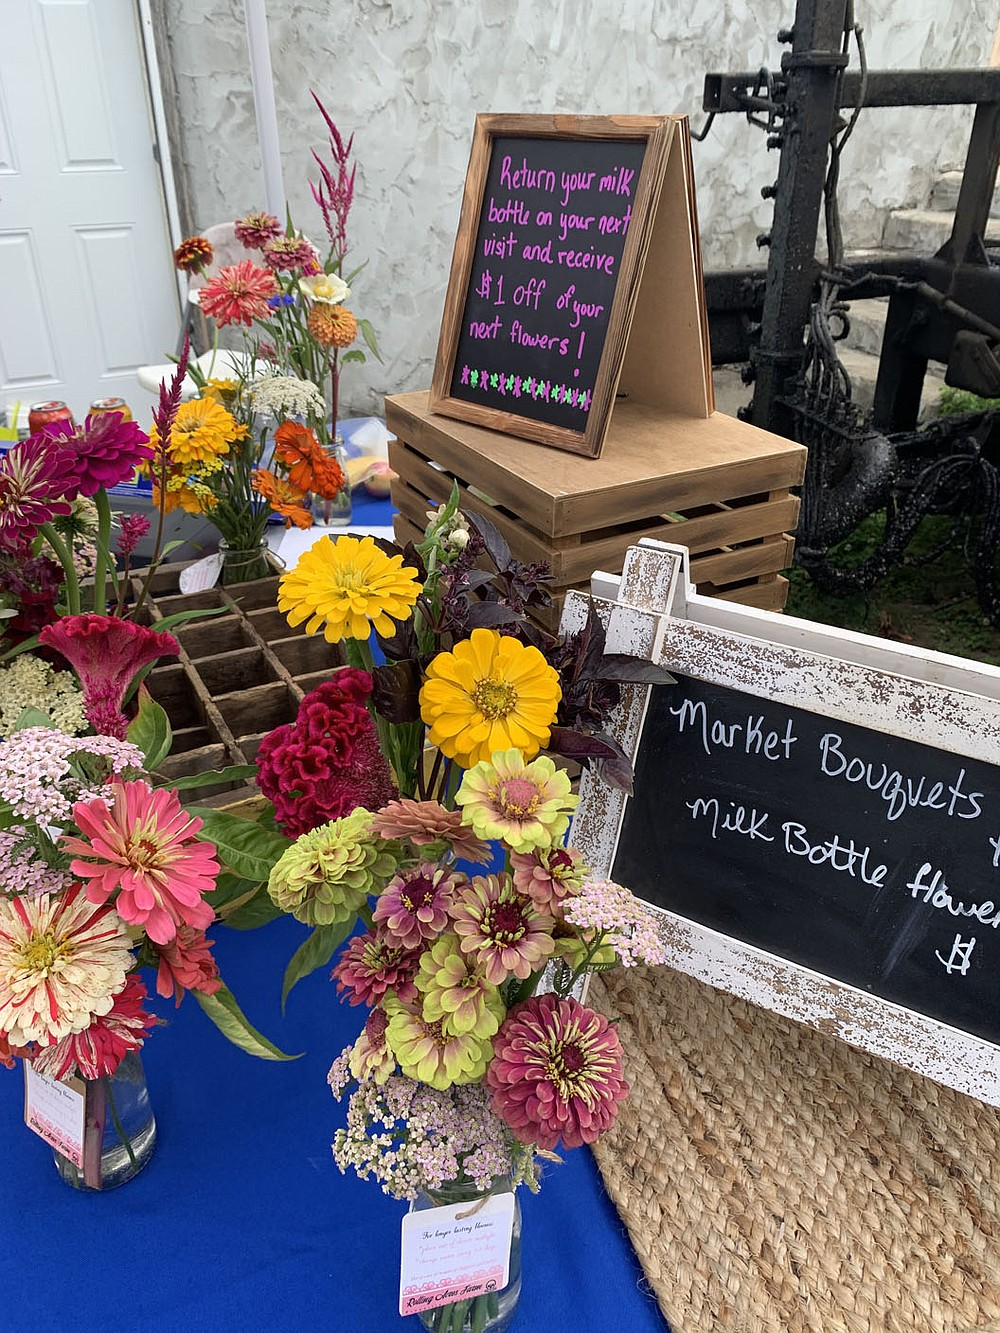 SALLY CARROLL/SPECIAL TO MCDONALD COUNTY PRESS Jesseca Freese creates these colorful bouquets and sells them at Mountain Happenings at Sims Corner.